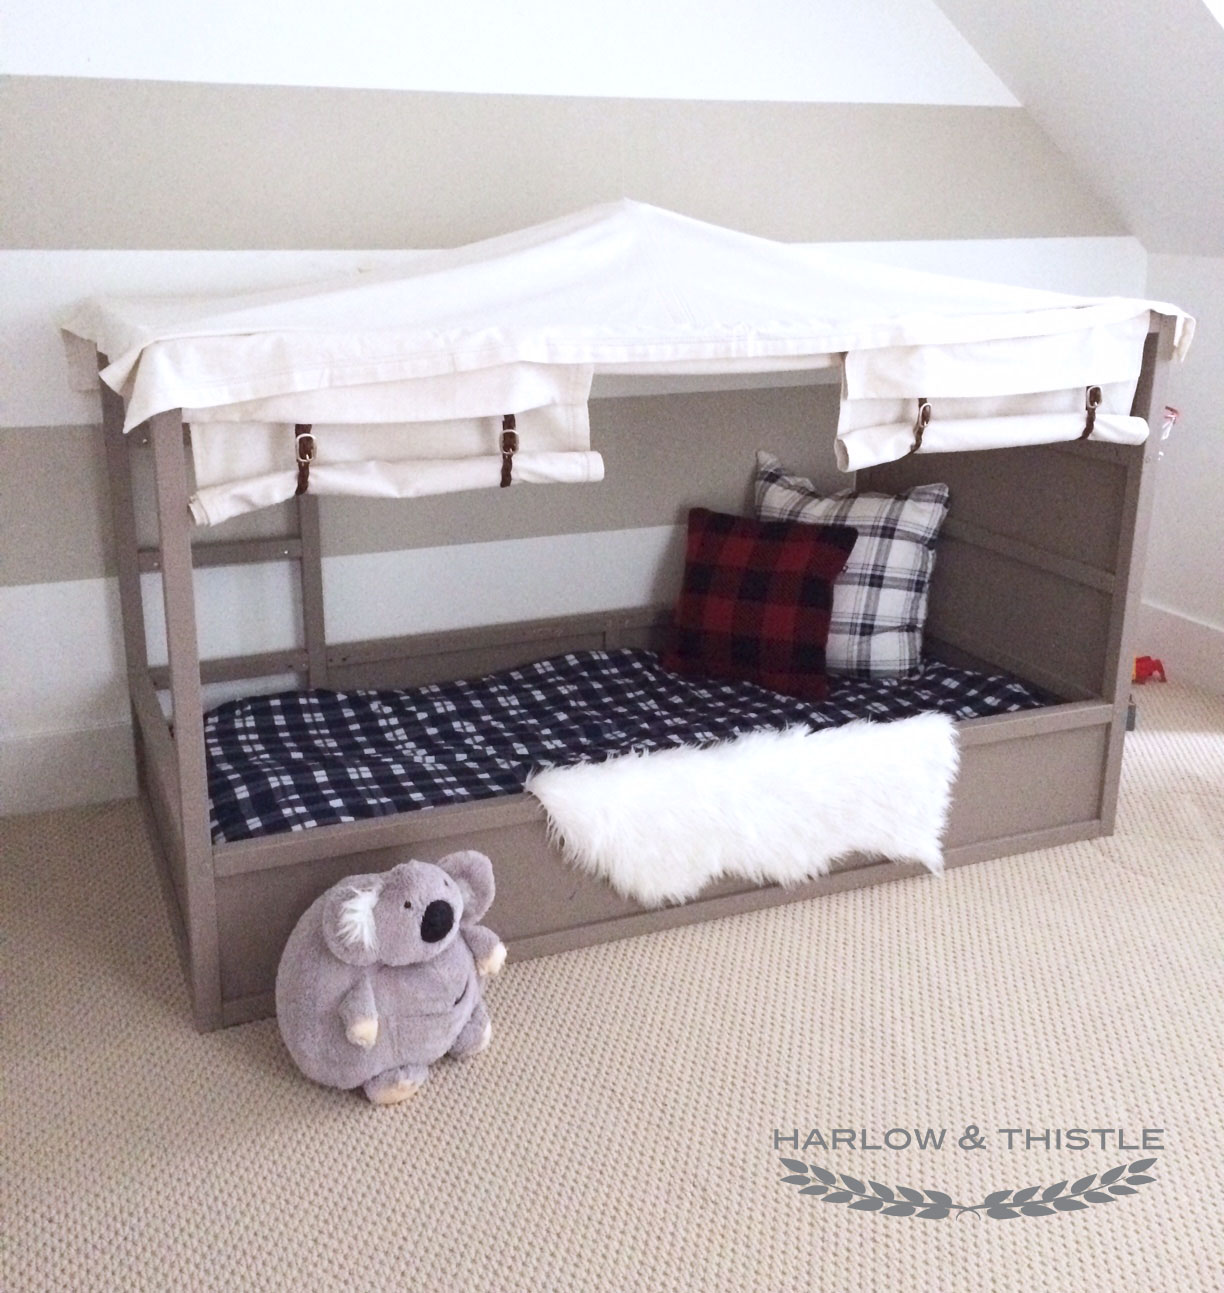 IKEA Kura Bed Hack: DIY Boy Canopy Bed - Harlow & Thistle - Home